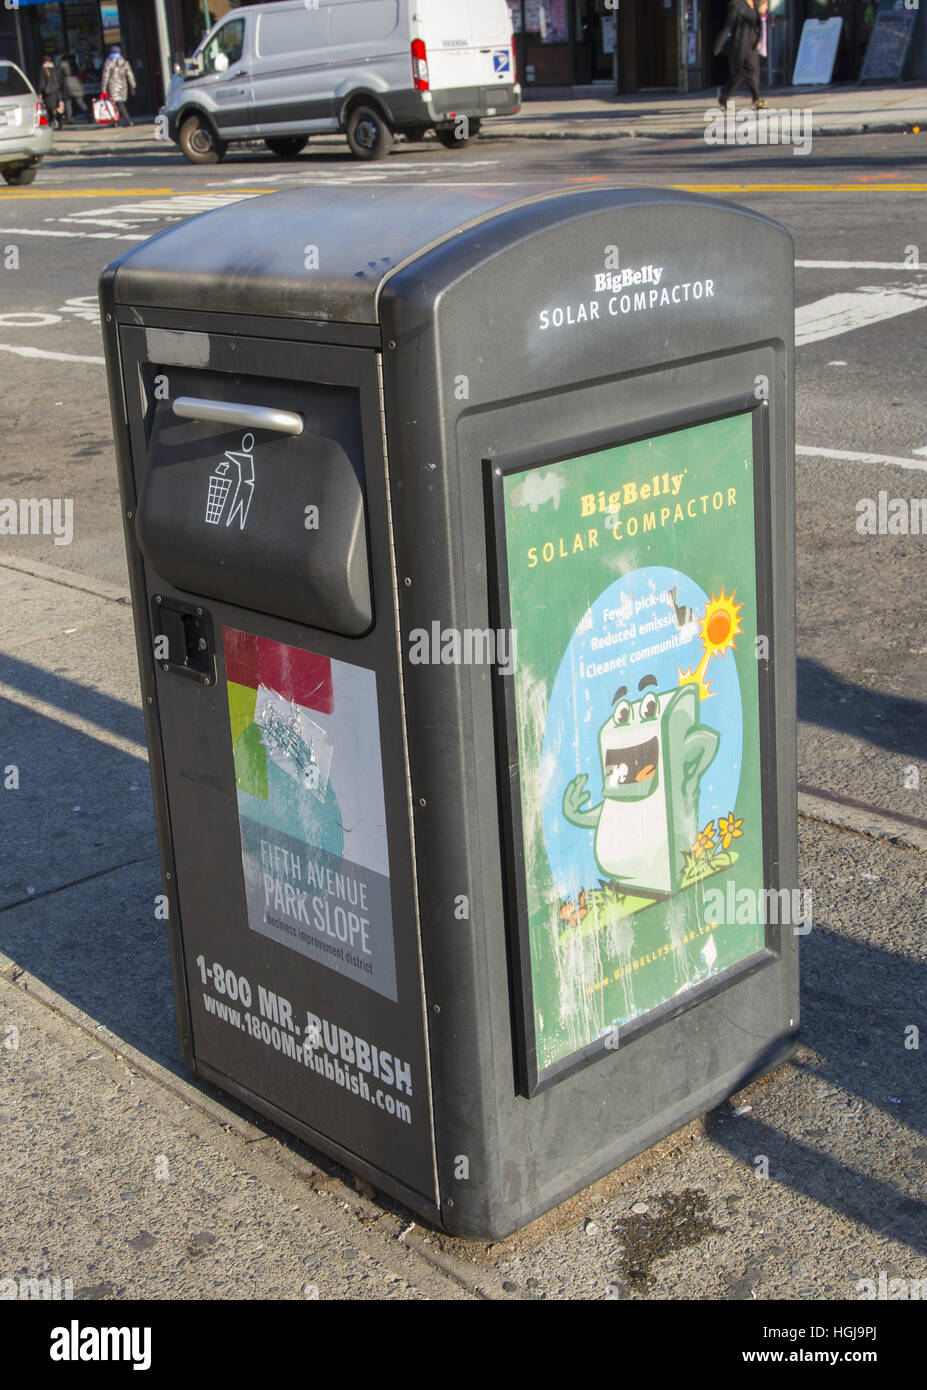 Trash Can With Solar Powered Compactor On The Street In: what is trash compactor and how does it work